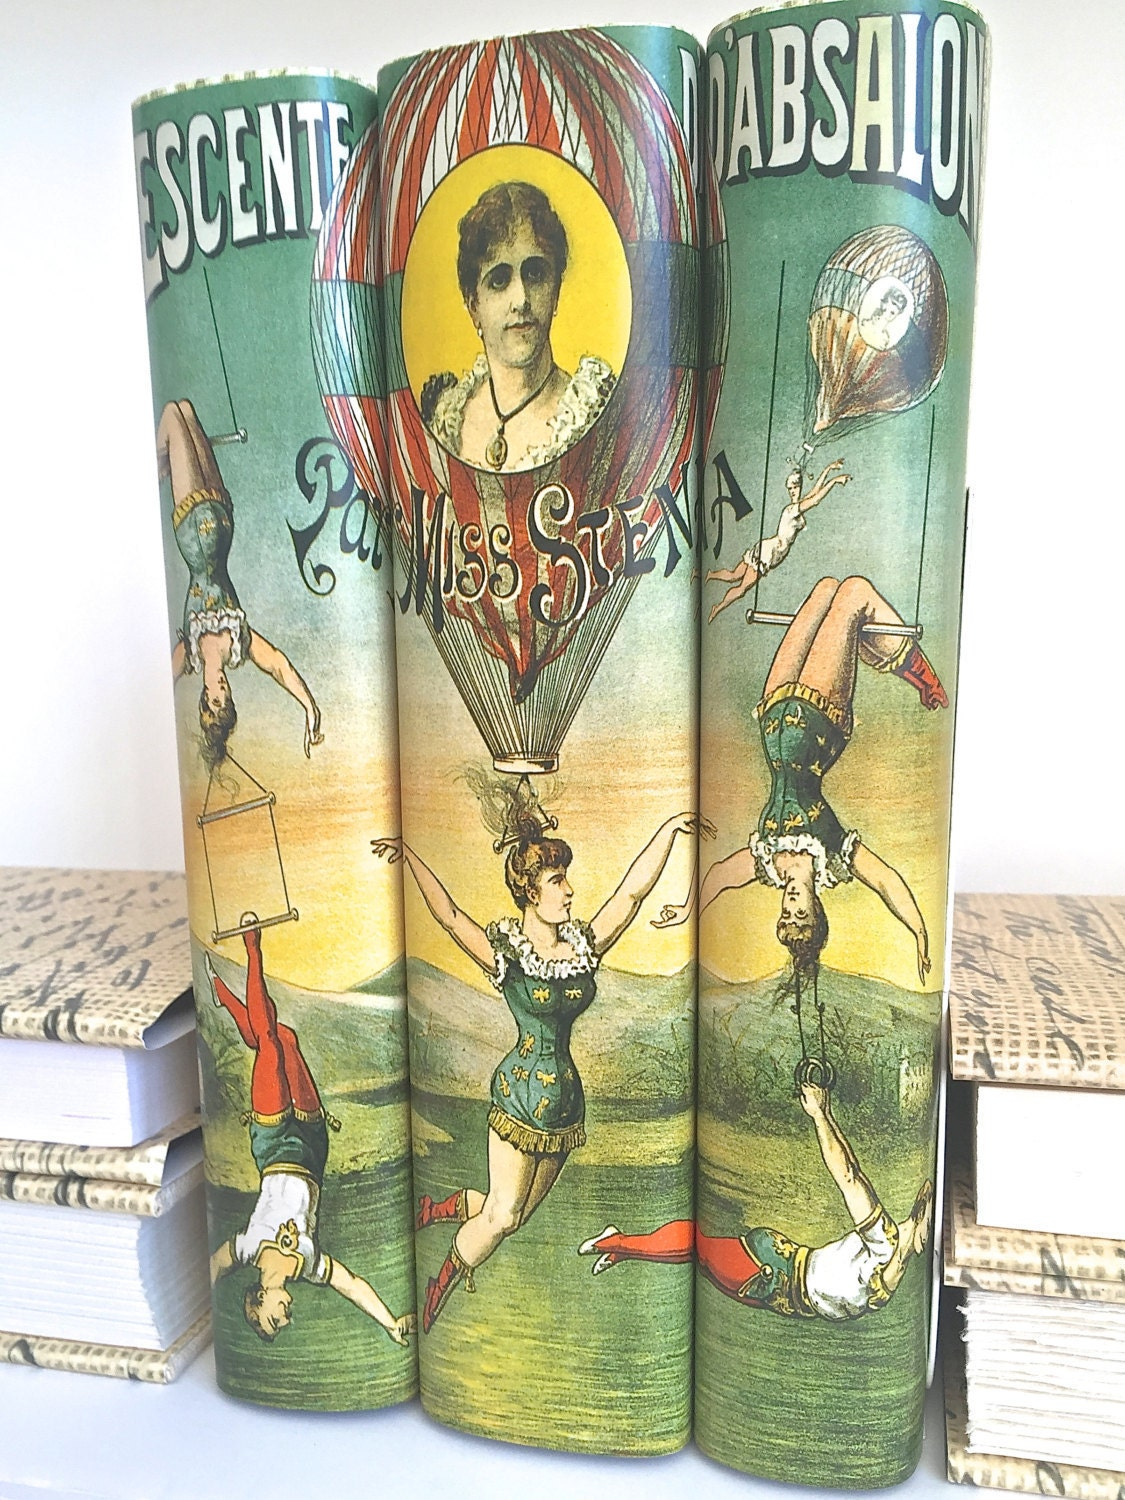 Vintage circus image decorative books book decor art vintage for Antique books for decoration